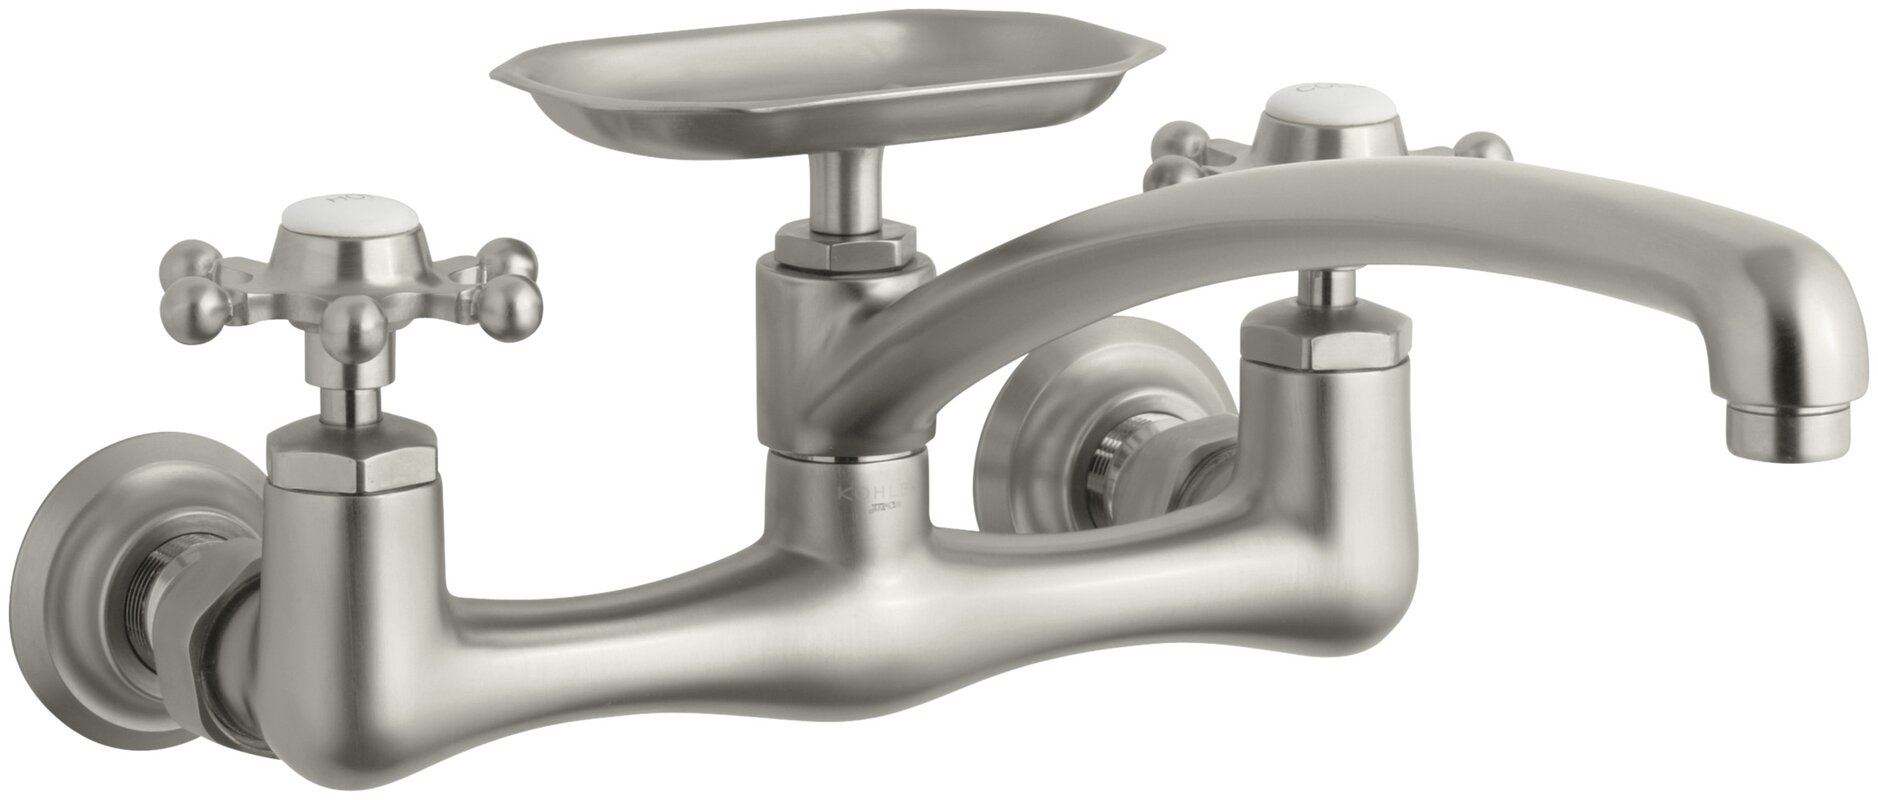 kohler antique two hole wall mount kitchen sink faucet with 8 default name